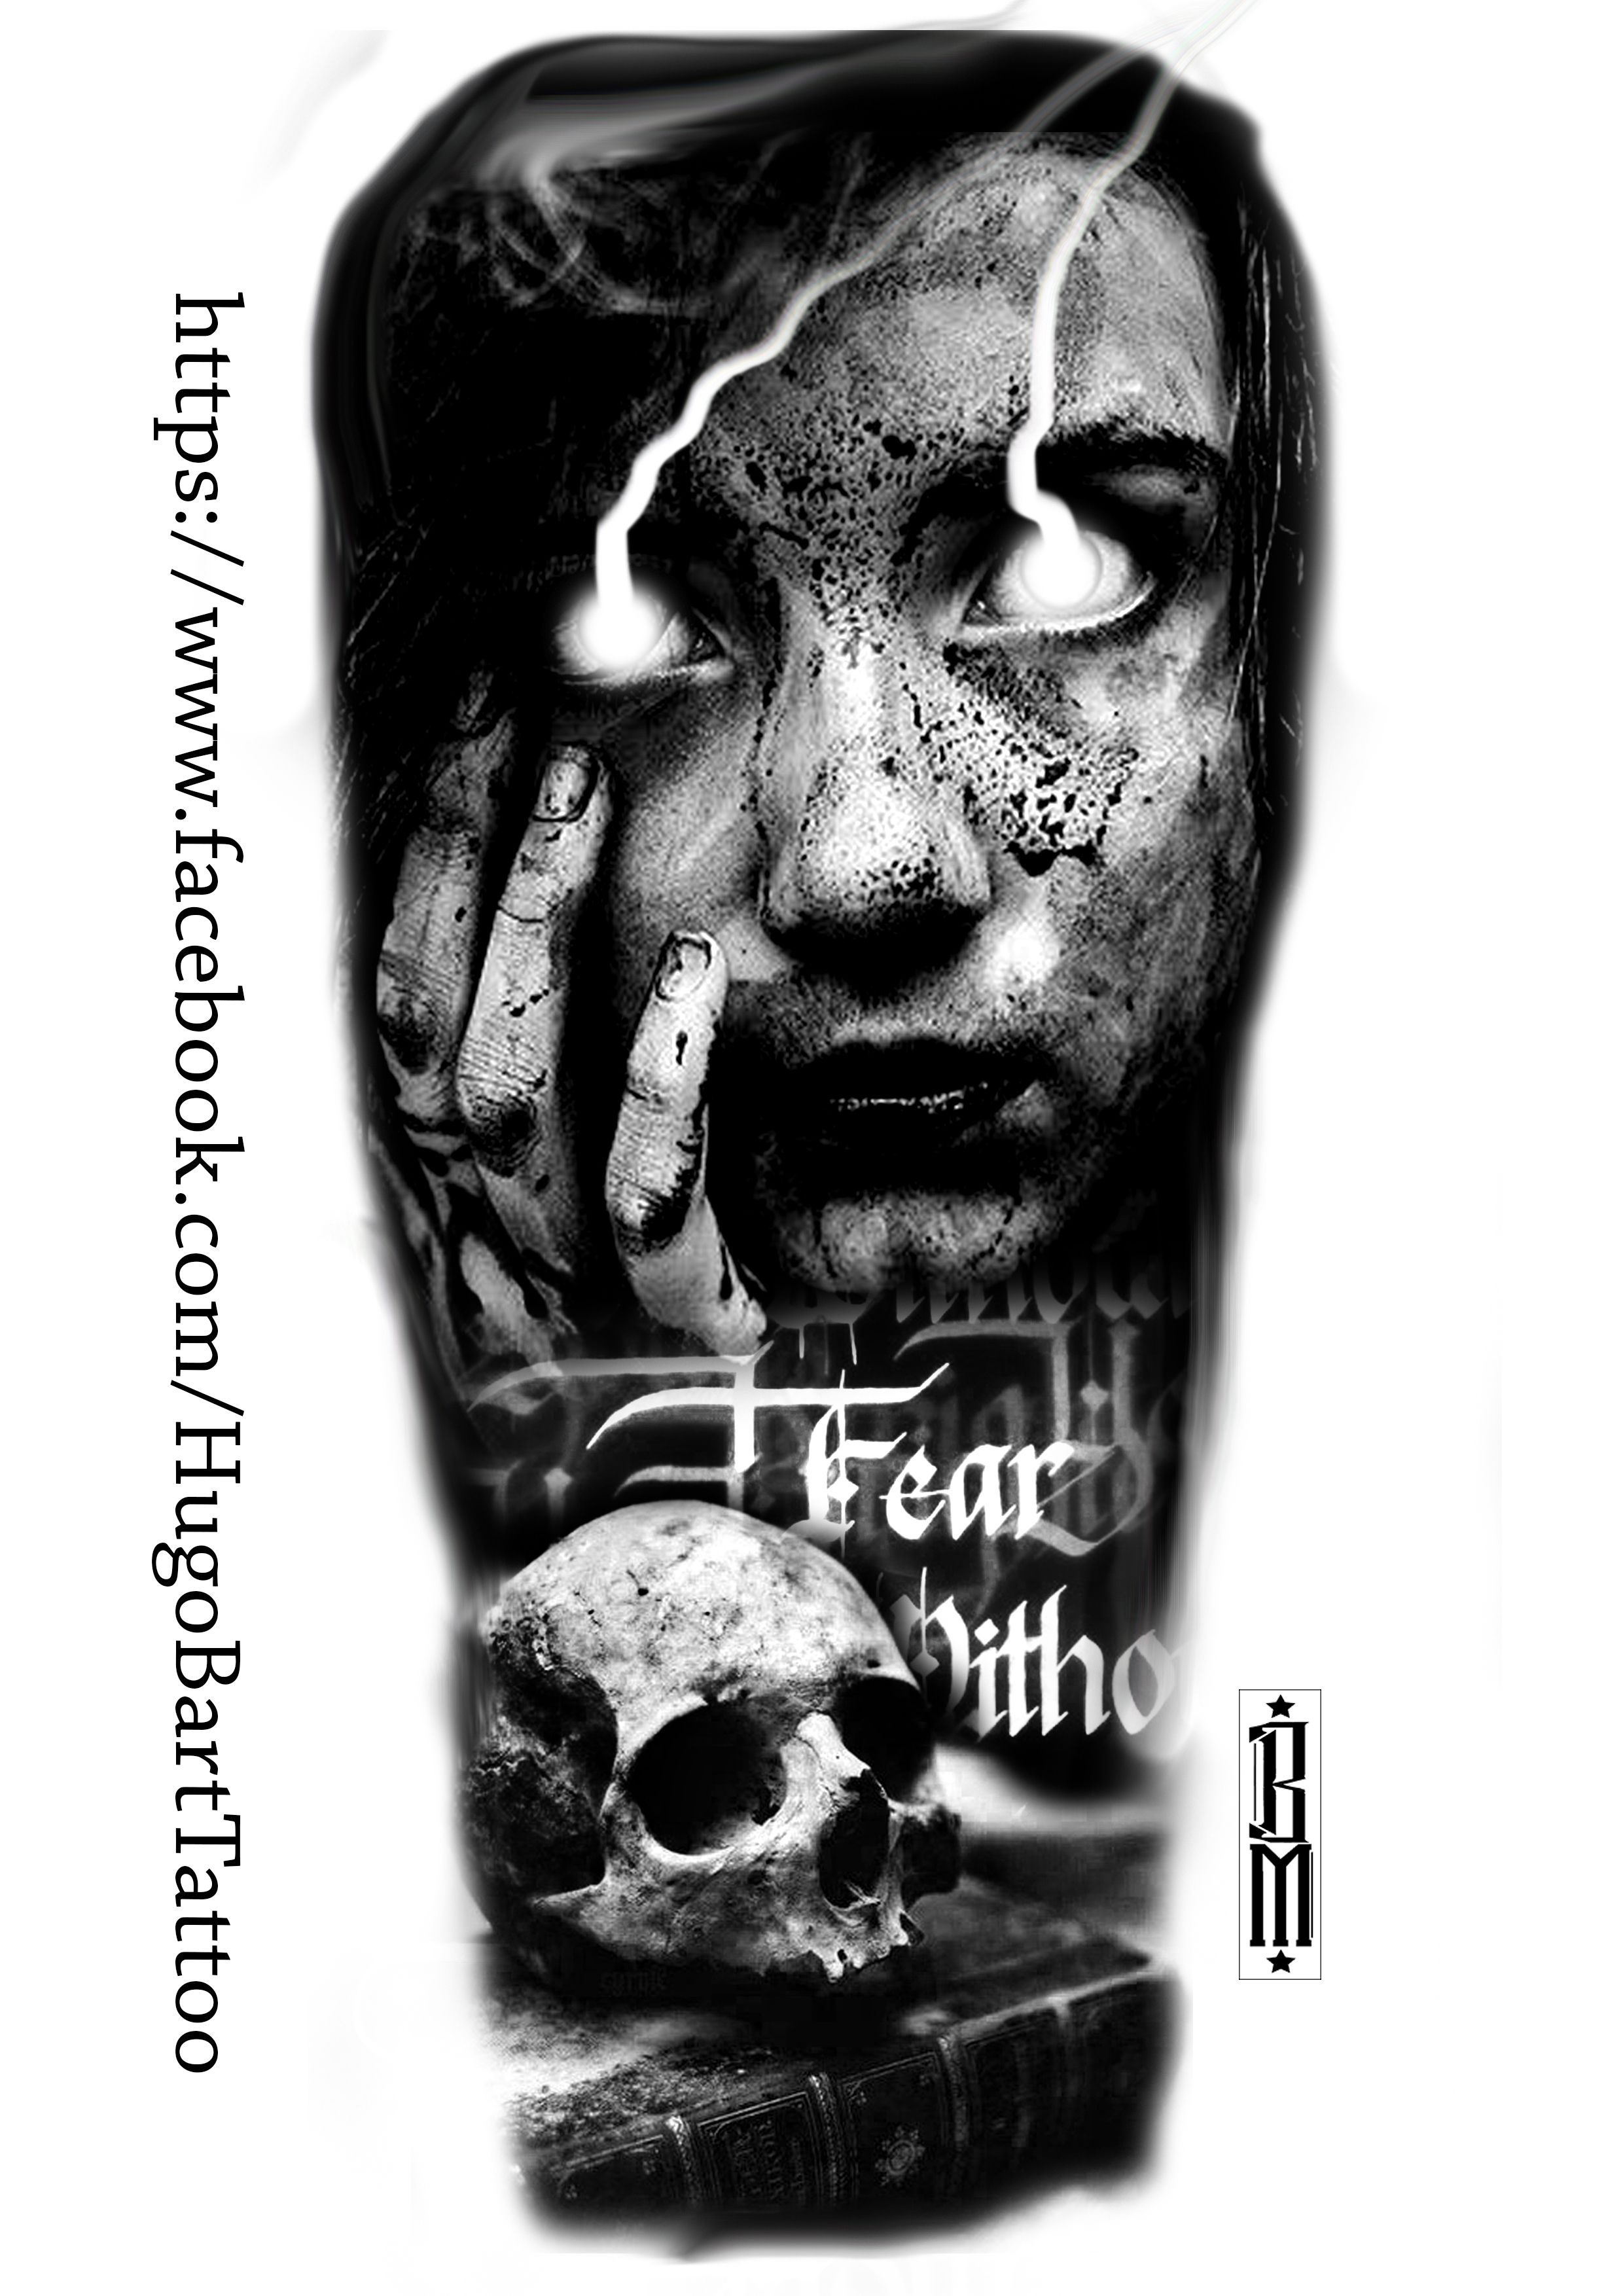 Skull Zombie Scarry Design Girl Book Horror Fear Tattoos Black And